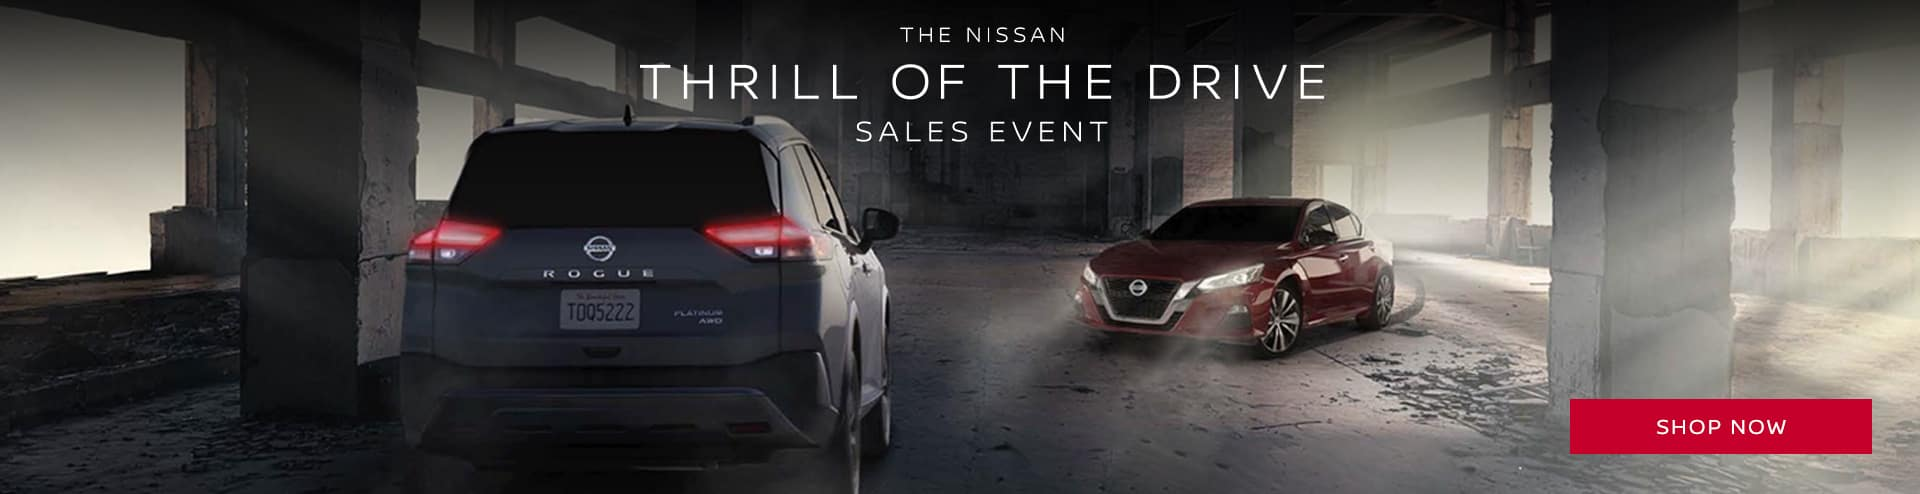 Thrill of drive banner